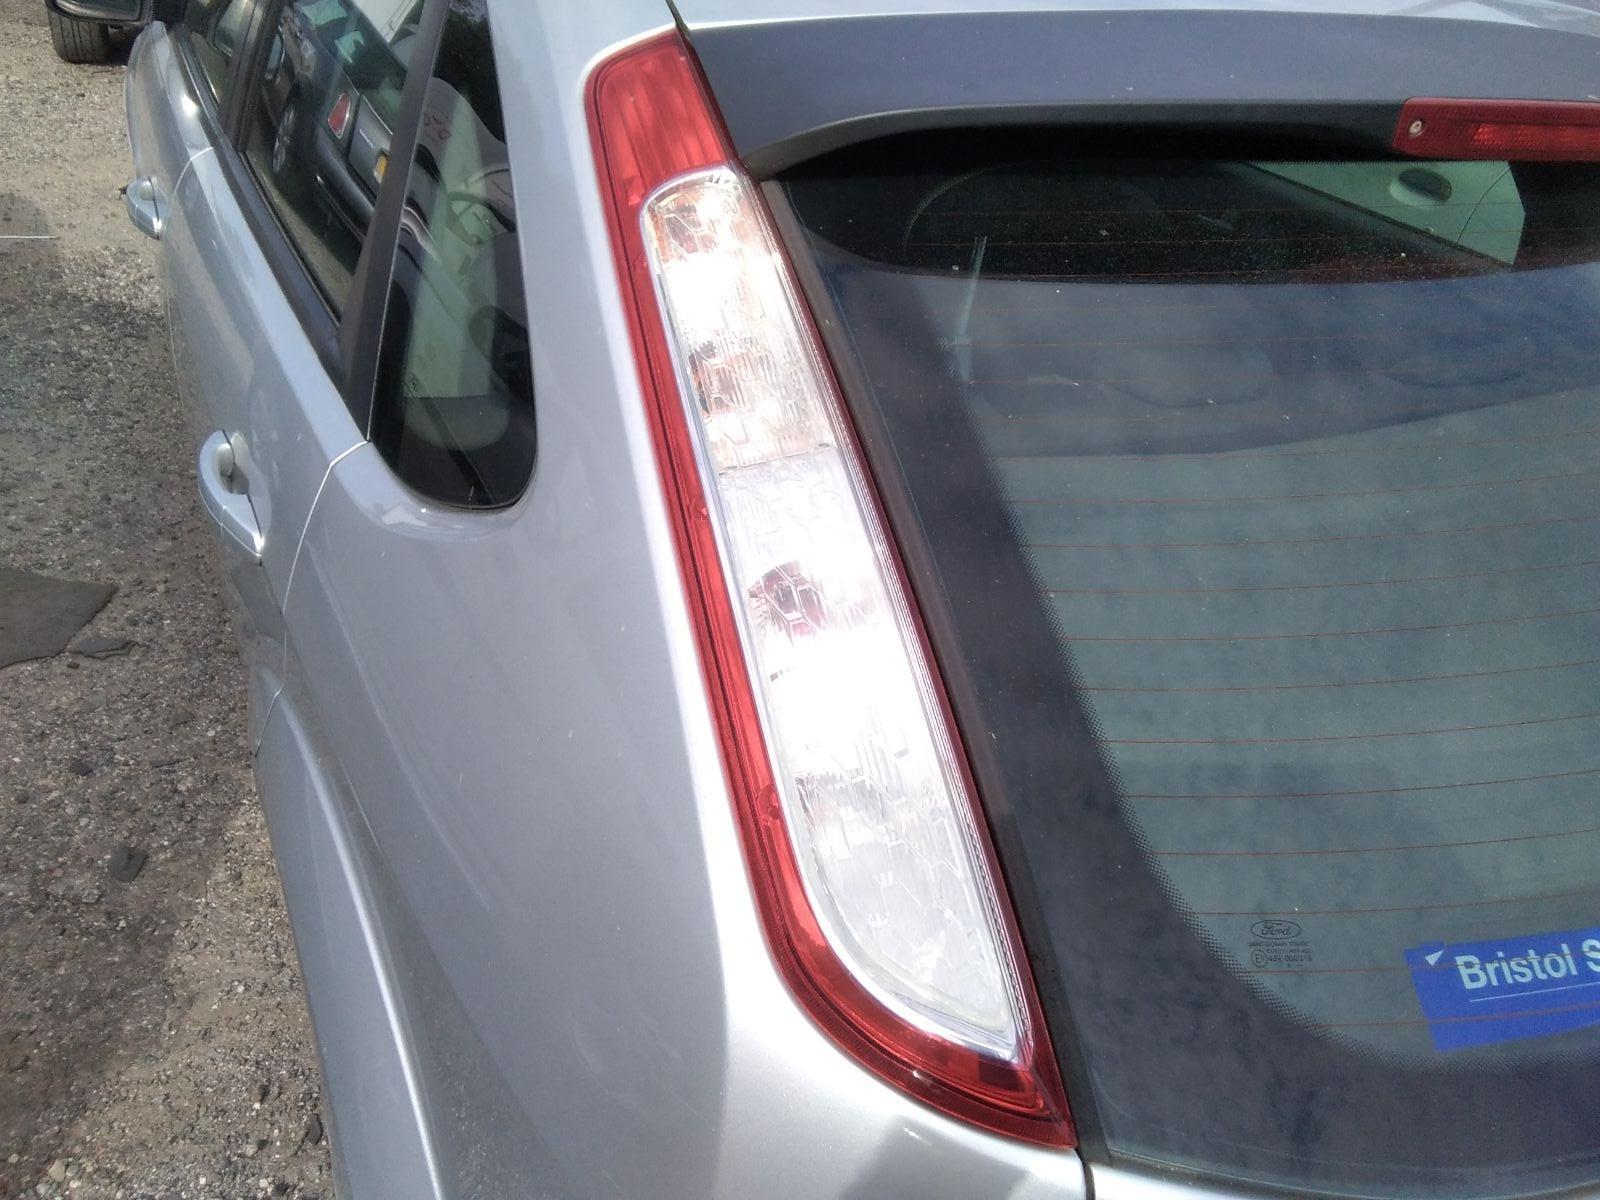 FORD, FOCUS, MK2 FL (C307) 2004 TO 2011, STYLE 5 DOOR HATCHBACK, PETROL MANUAL Lamp Assembly Rear LH